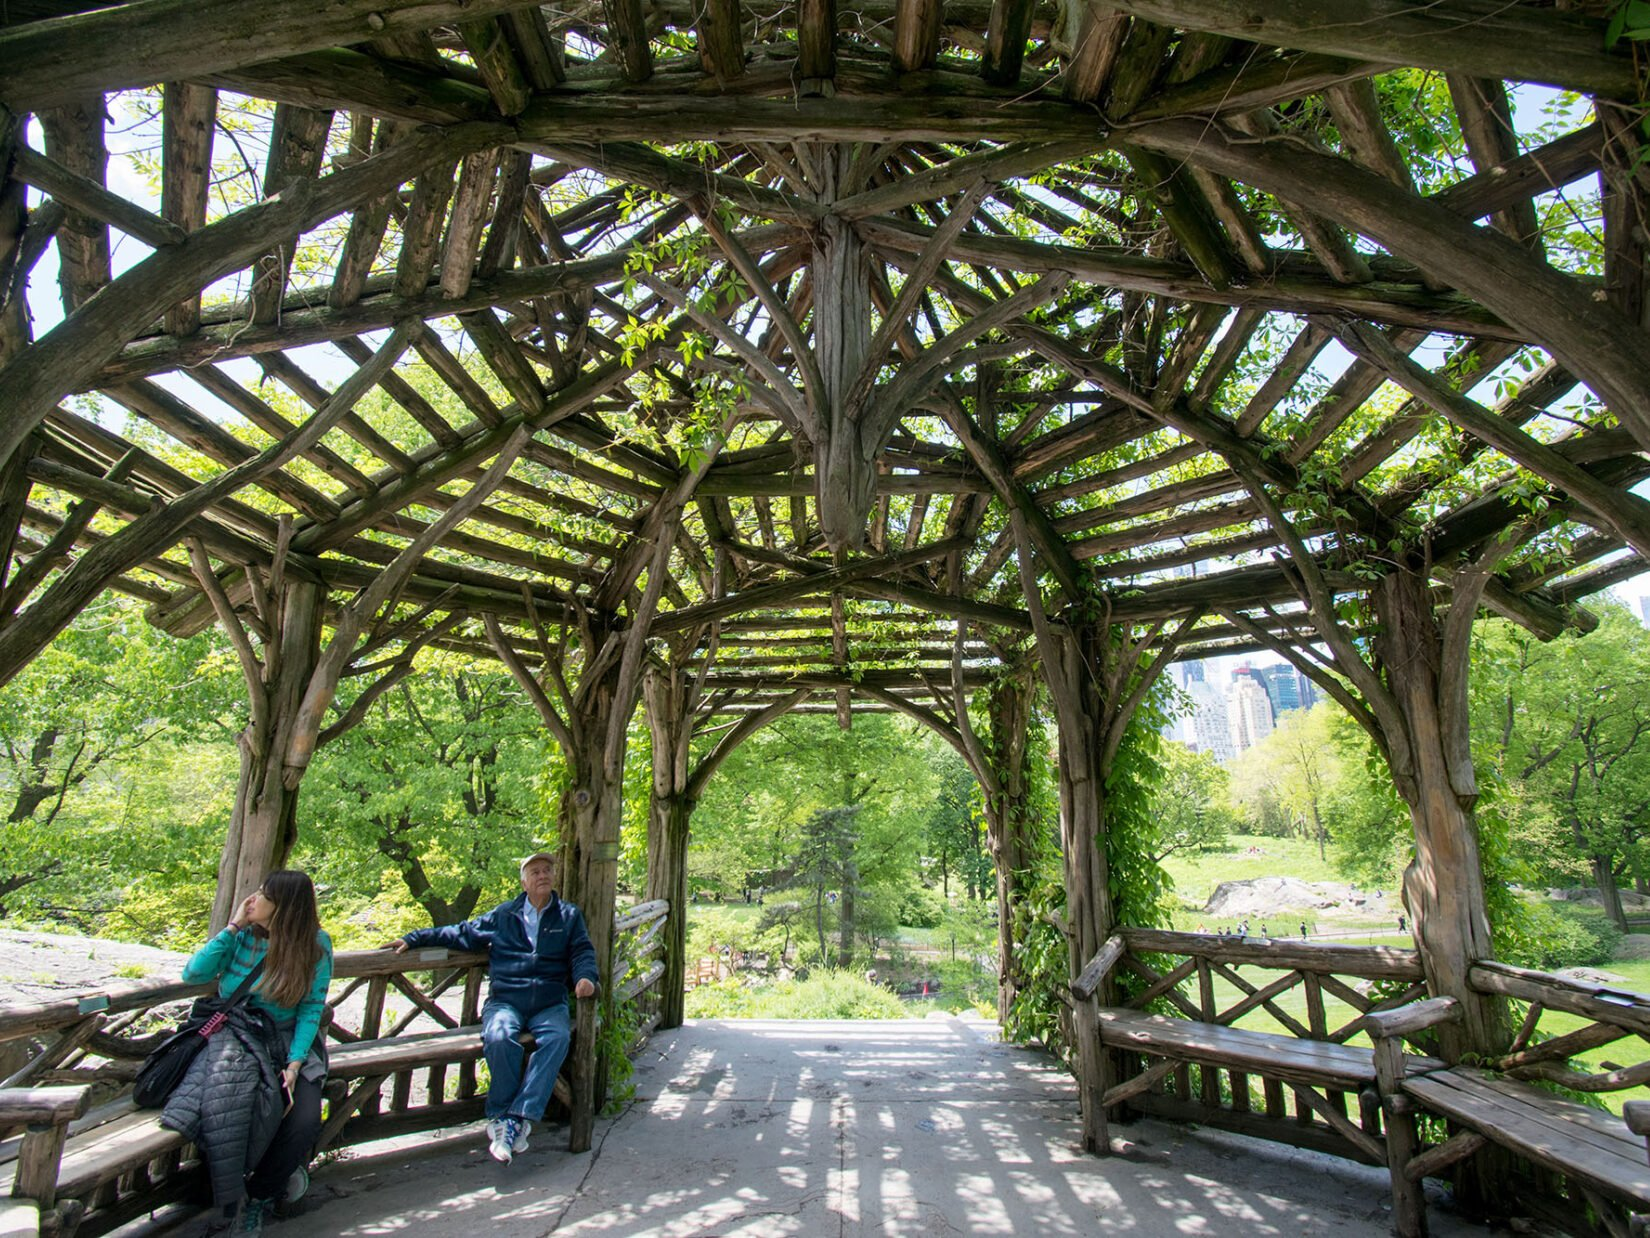 The roof of the rustic structure is a dramatic frame for two visitors seated below